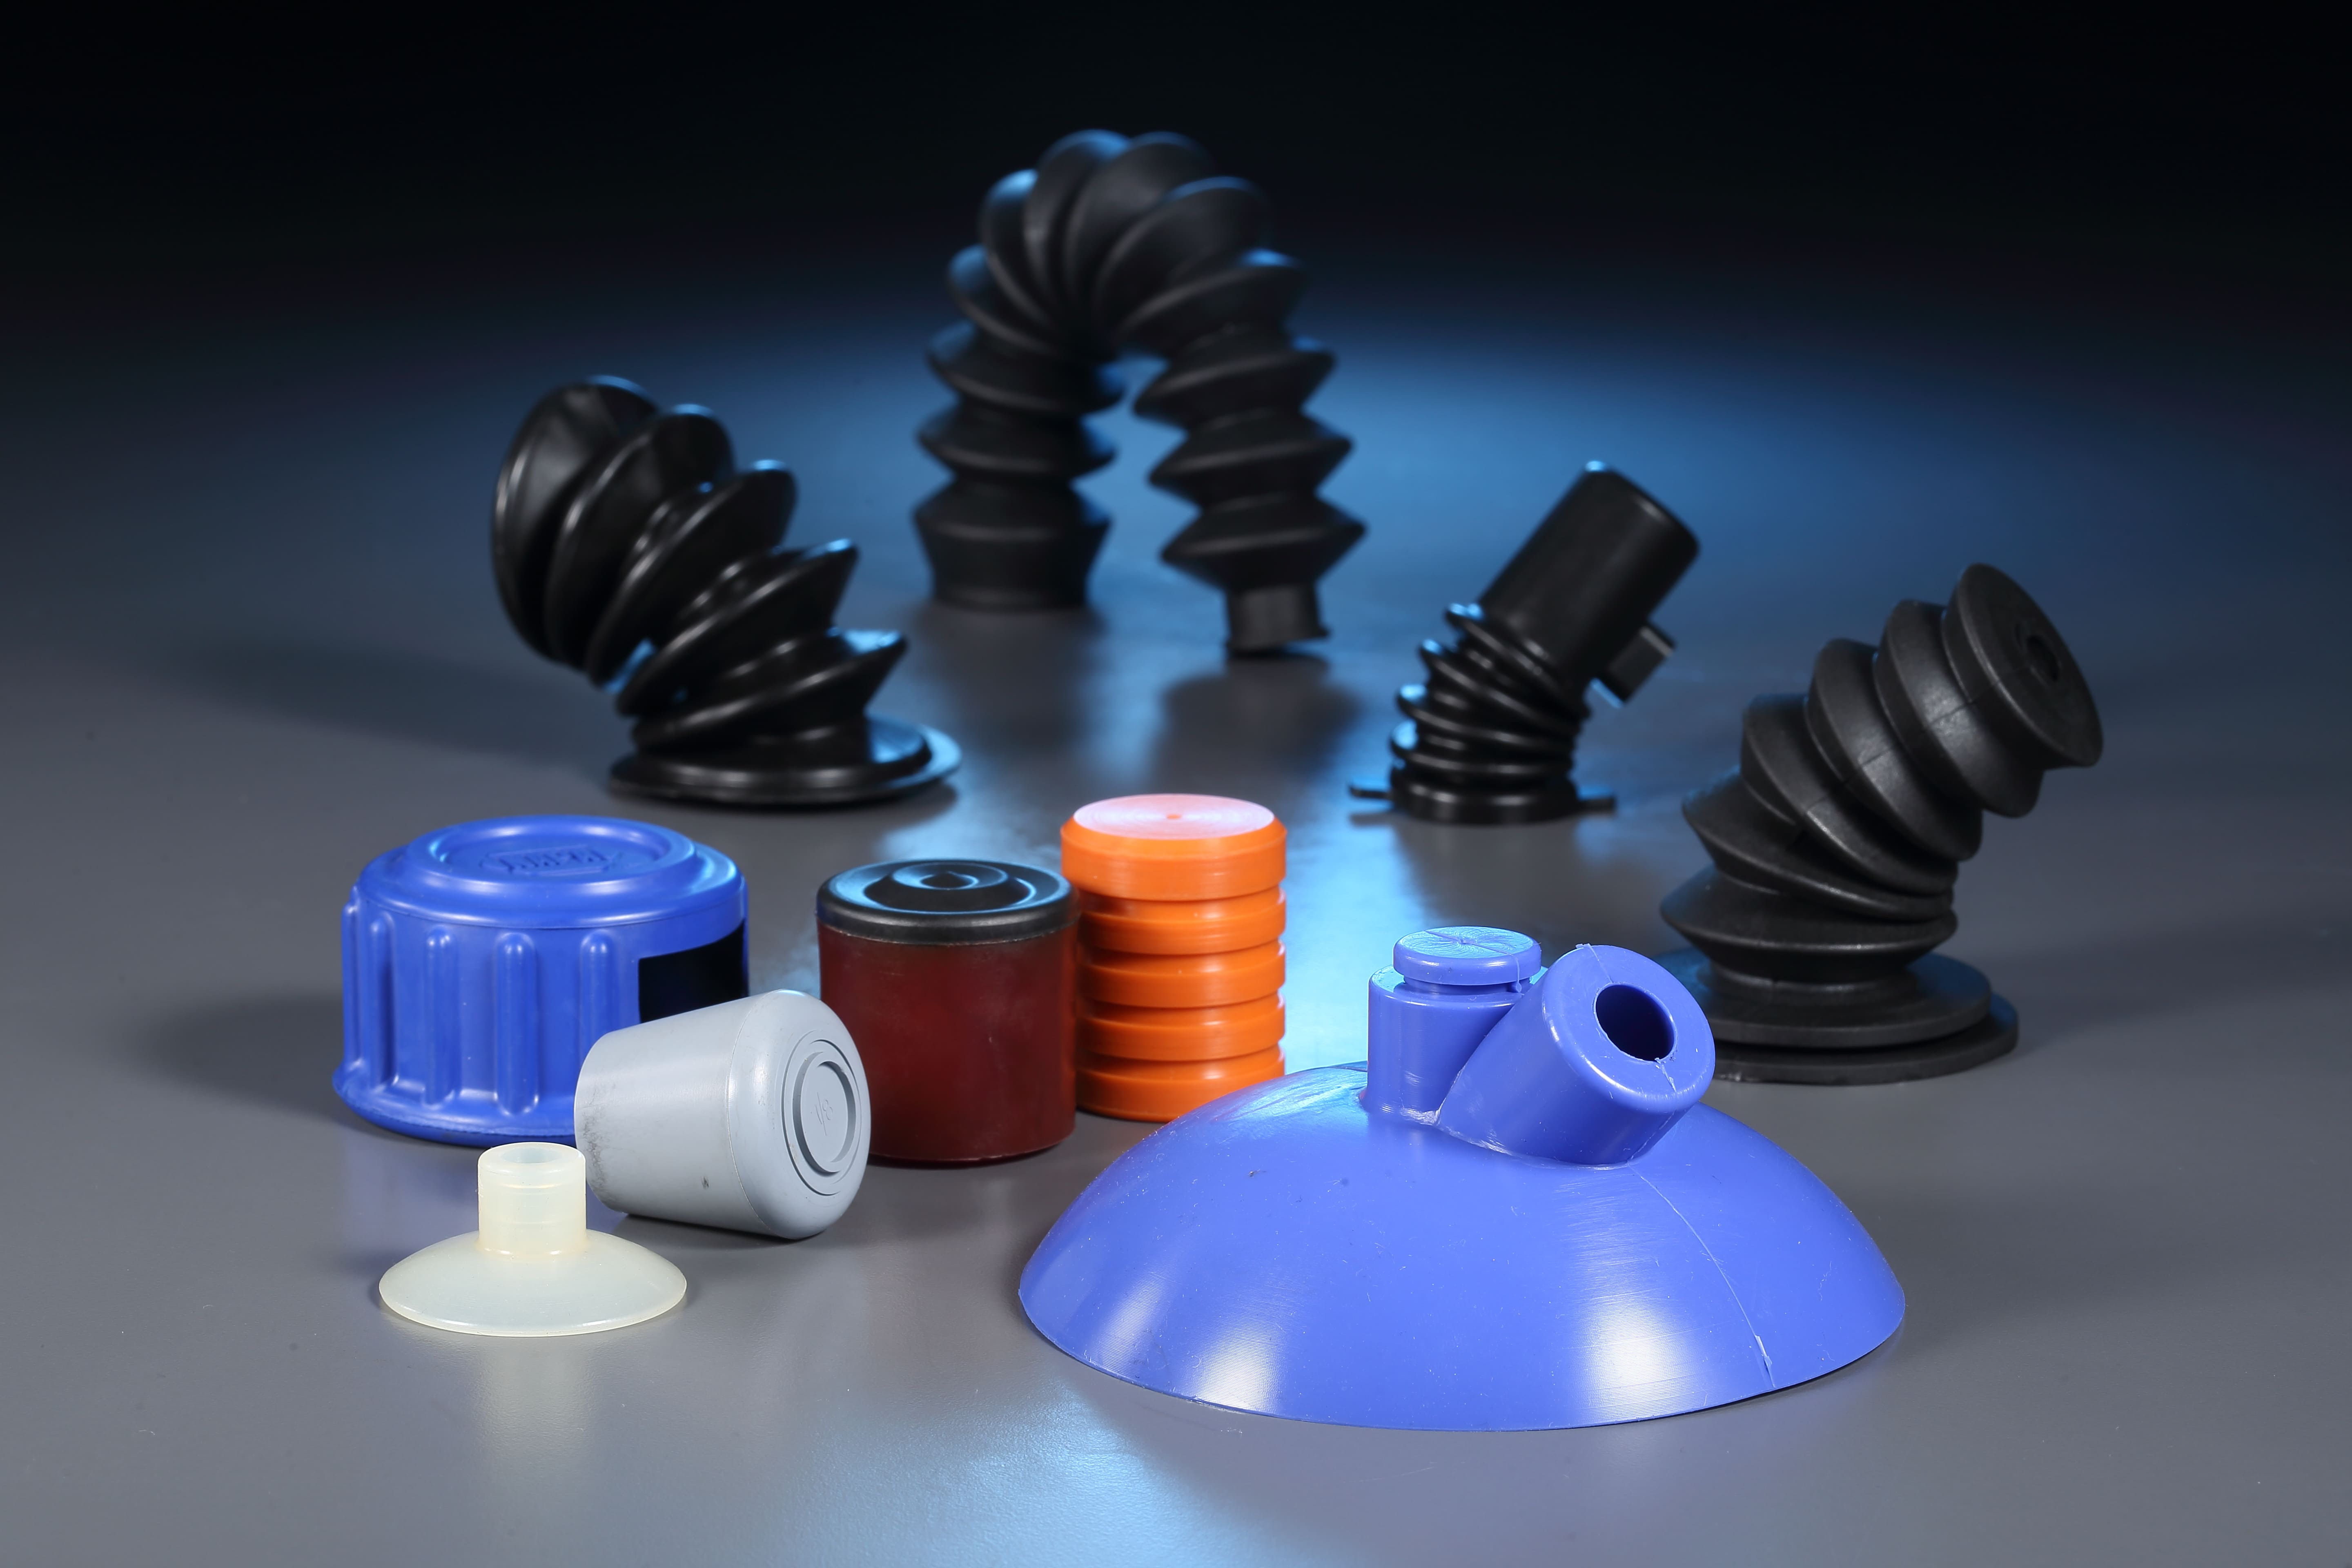 Bus Rubber Boot Series for Car for Rubber, Plastic Parts made by Yee Ming Ying Co., LTD. 昱銘穎有限公司 - MatchSupplier.com